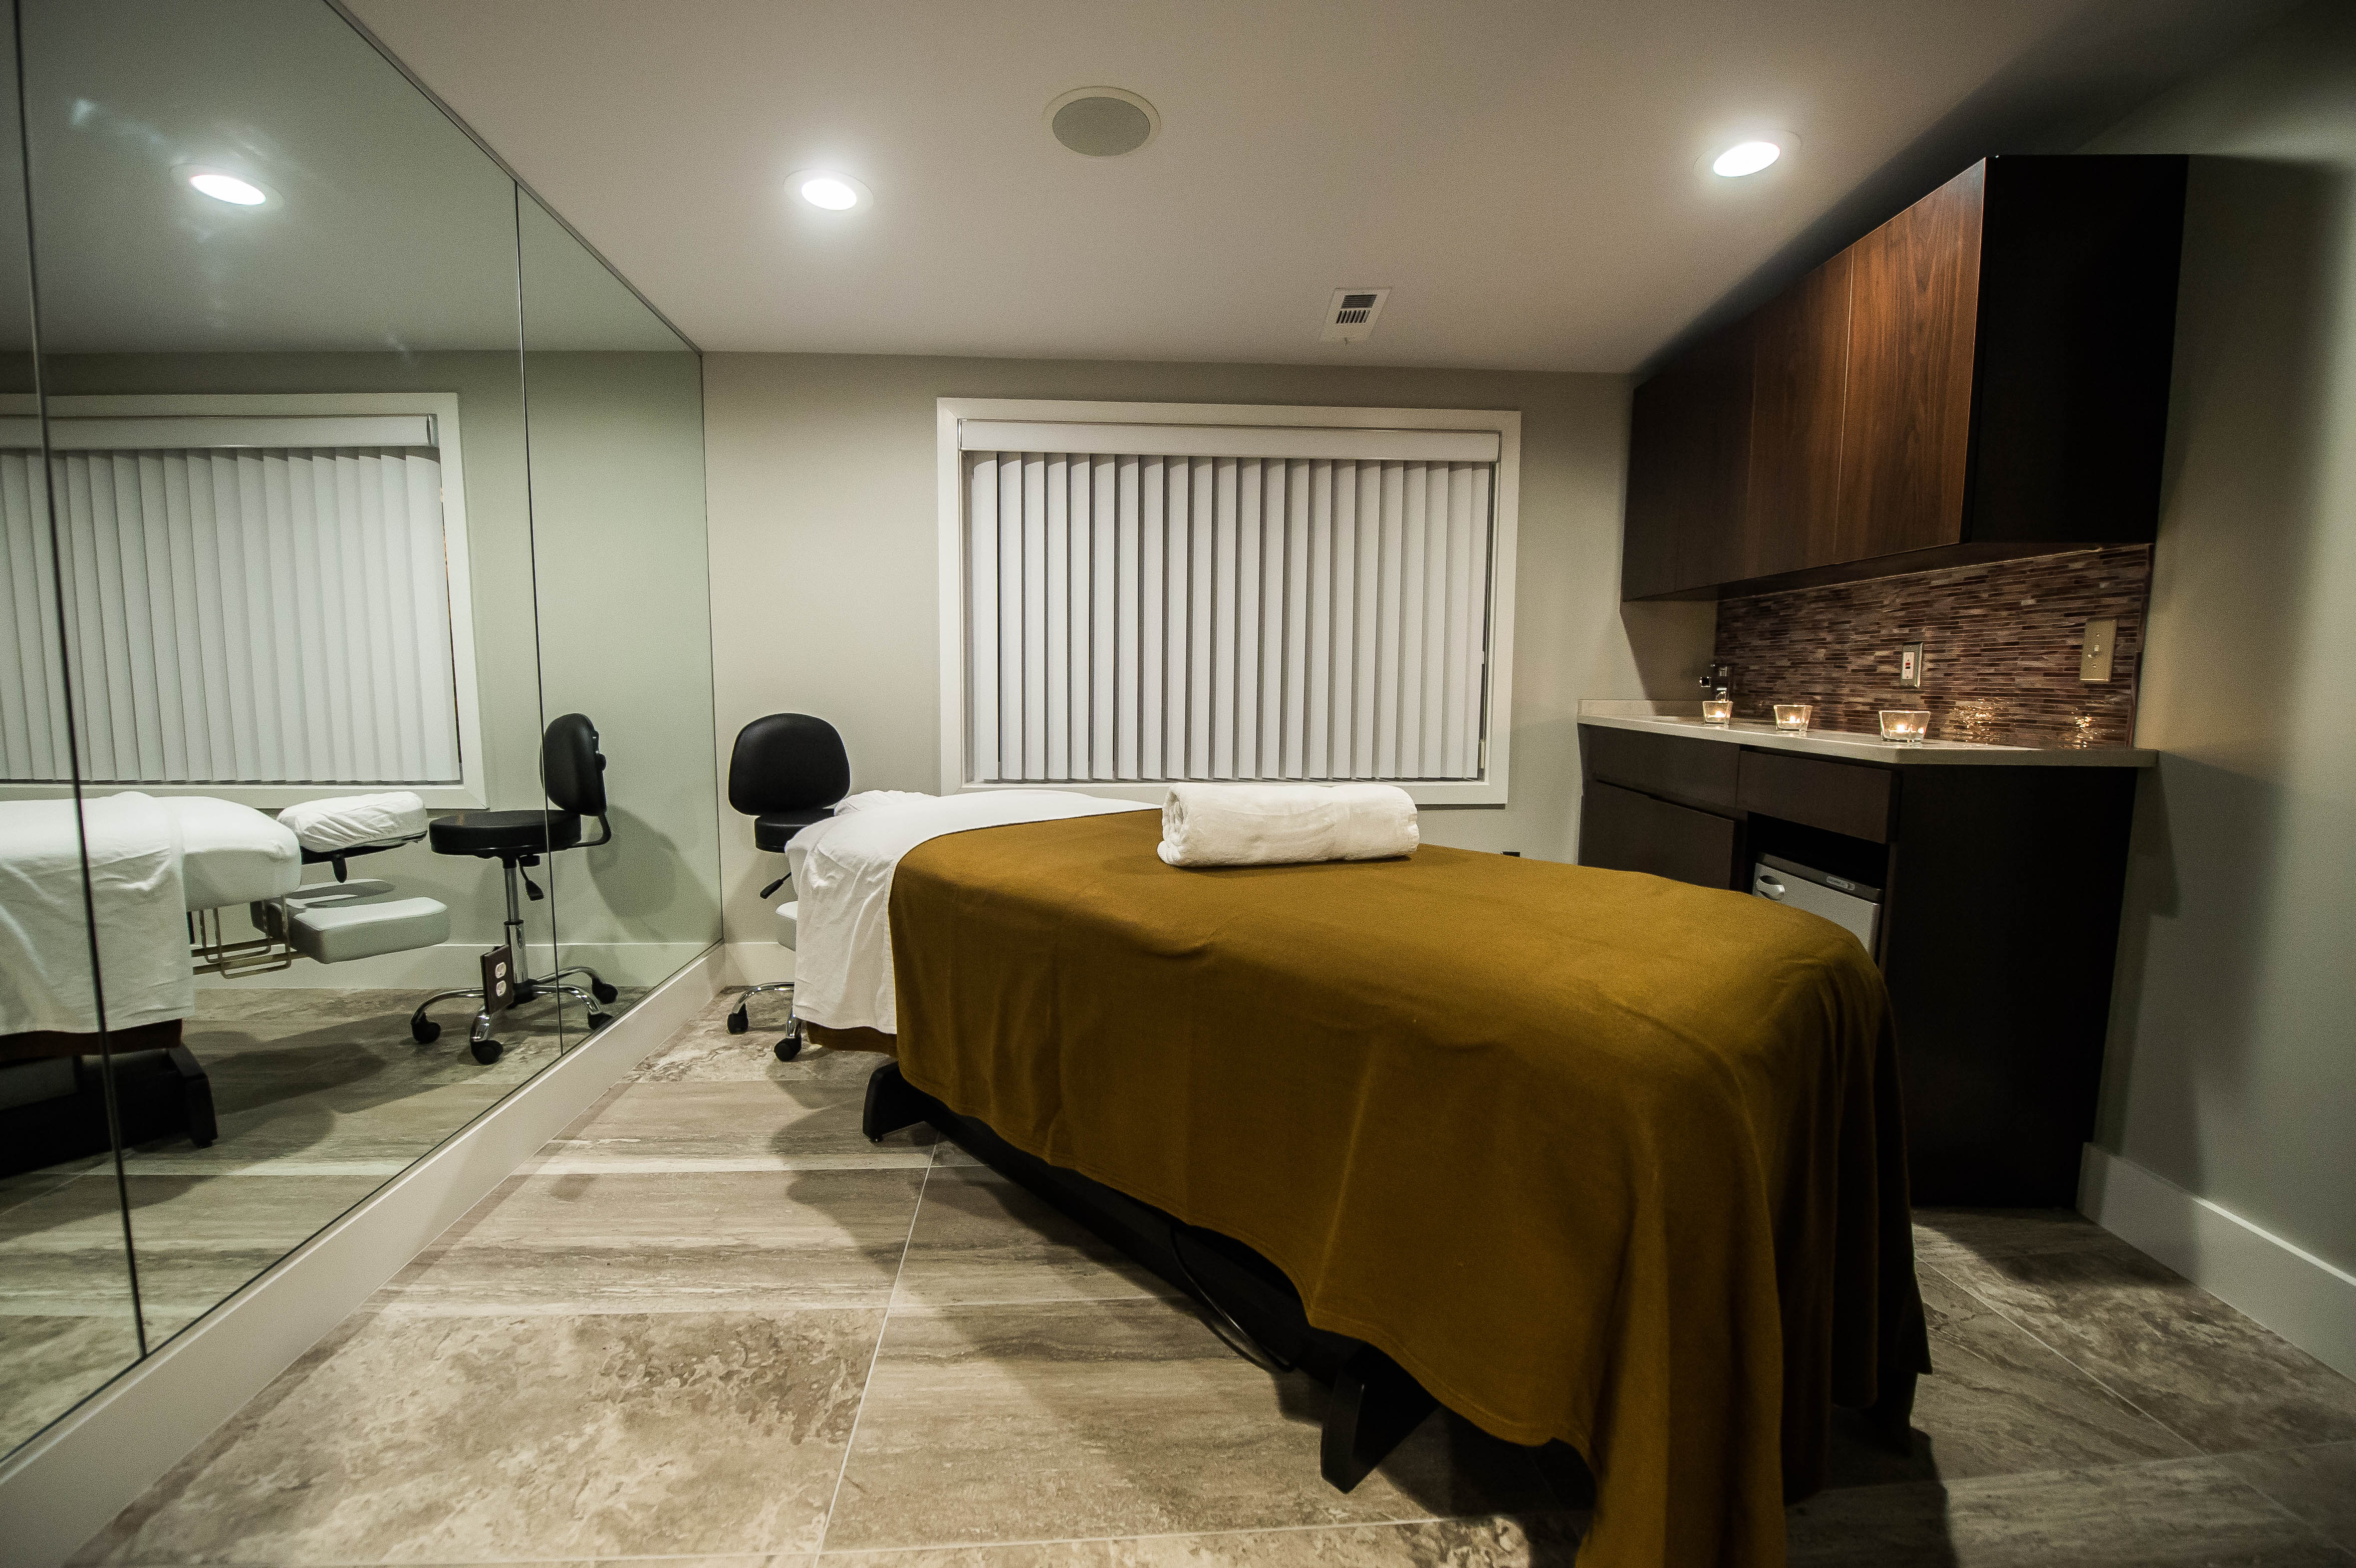 Luigi parasmo salon celebrates grand opening of new spa for A new image salon